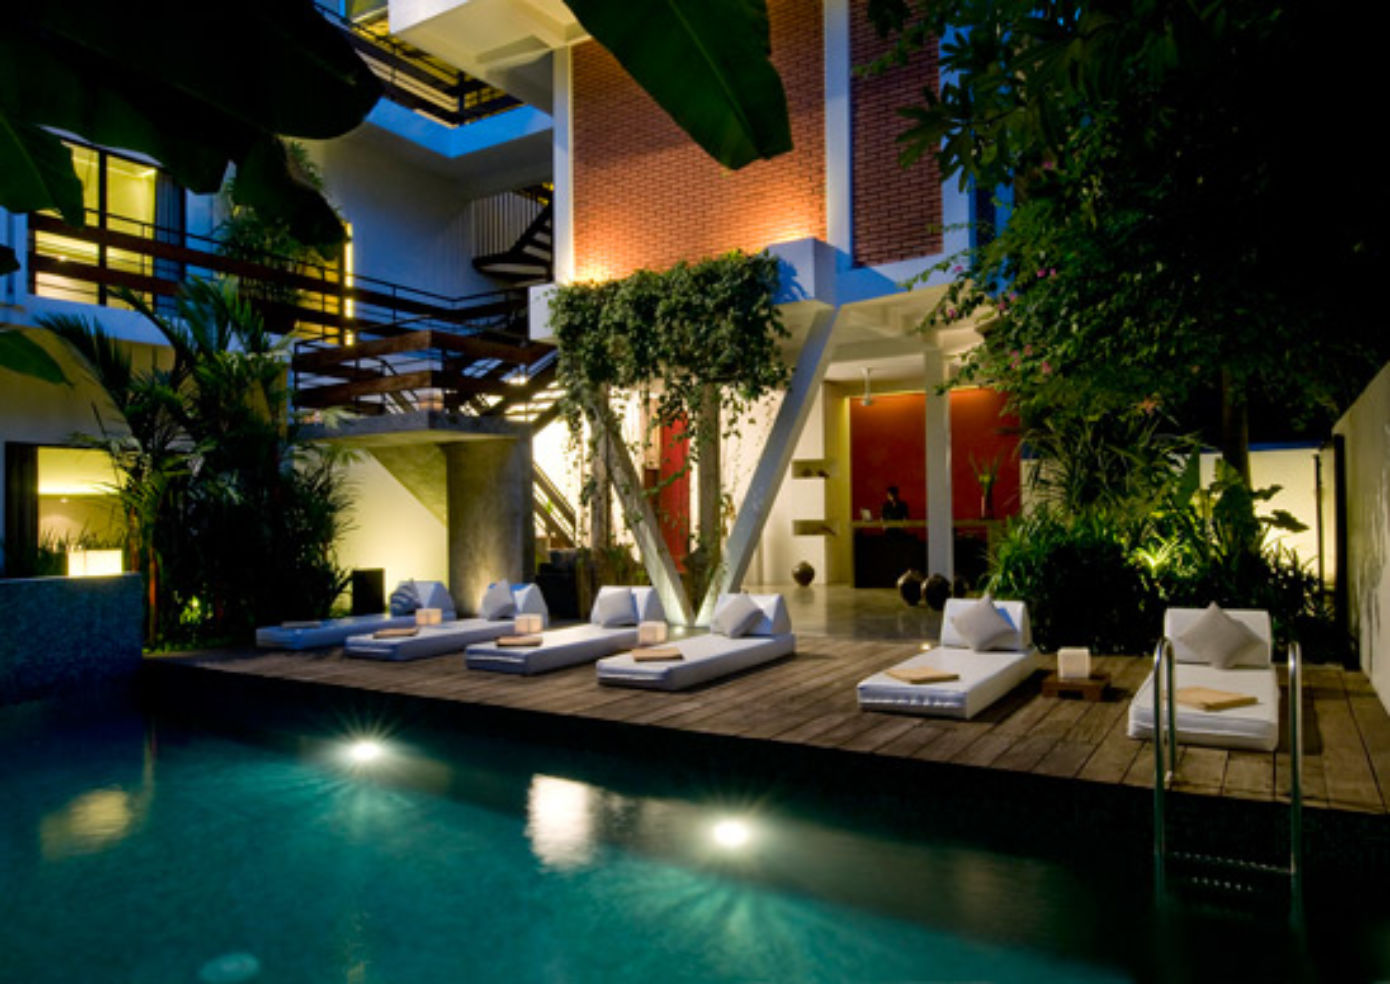 The pool at Viroth's Hotel